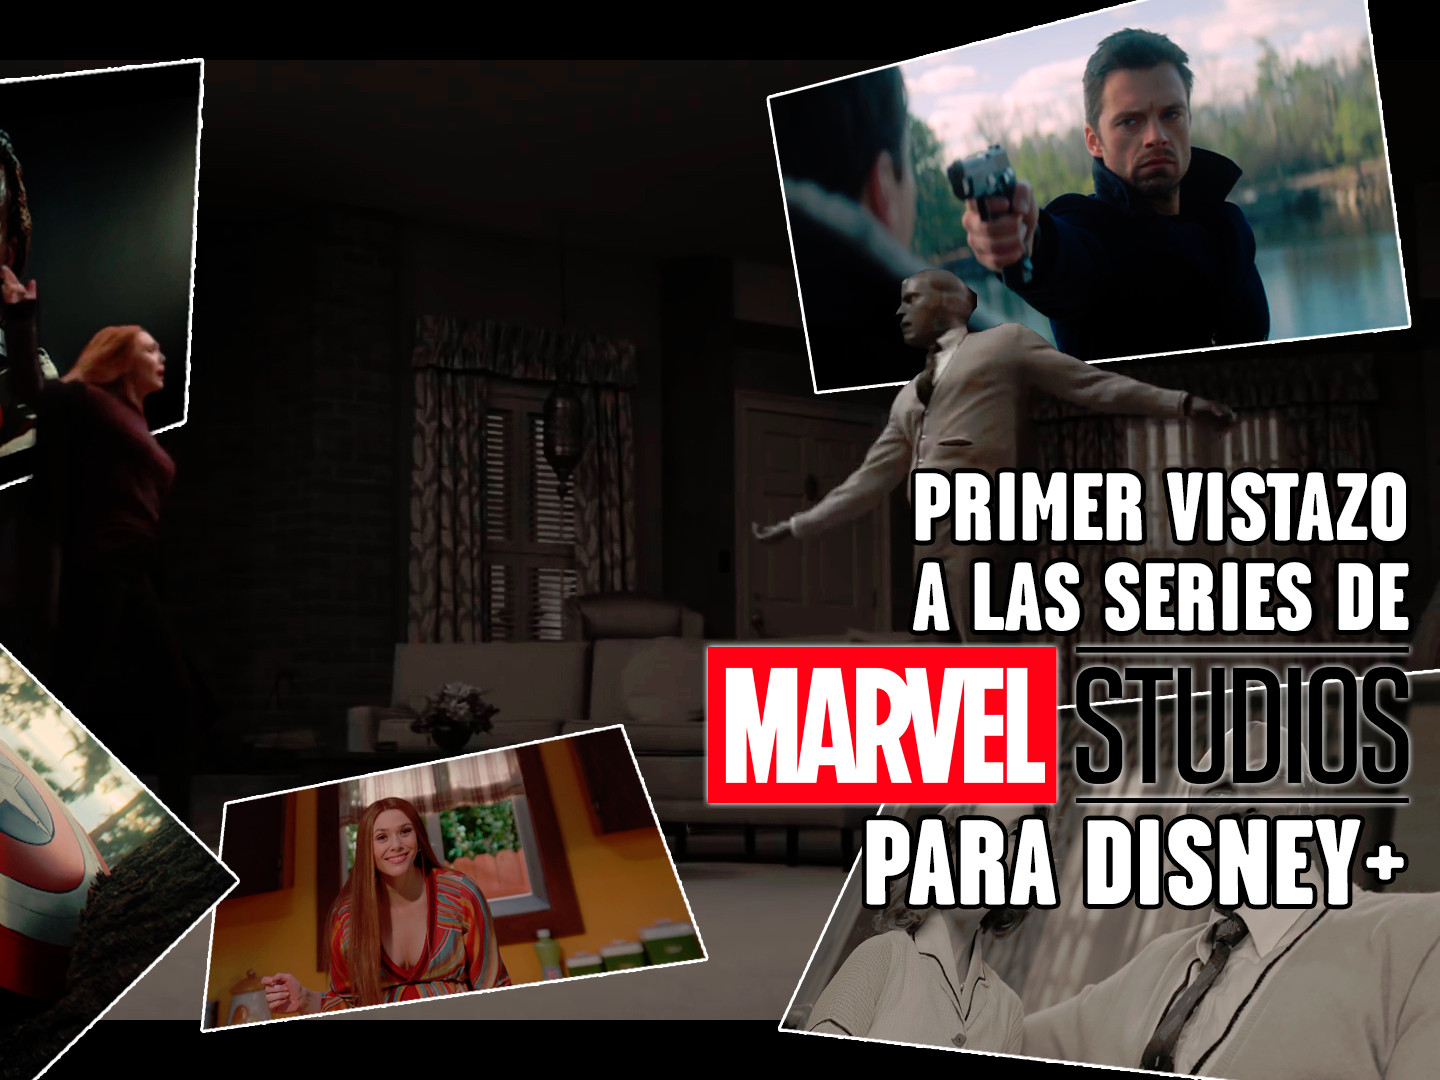 Marvel sin Filtro.  Trailers Superbowl